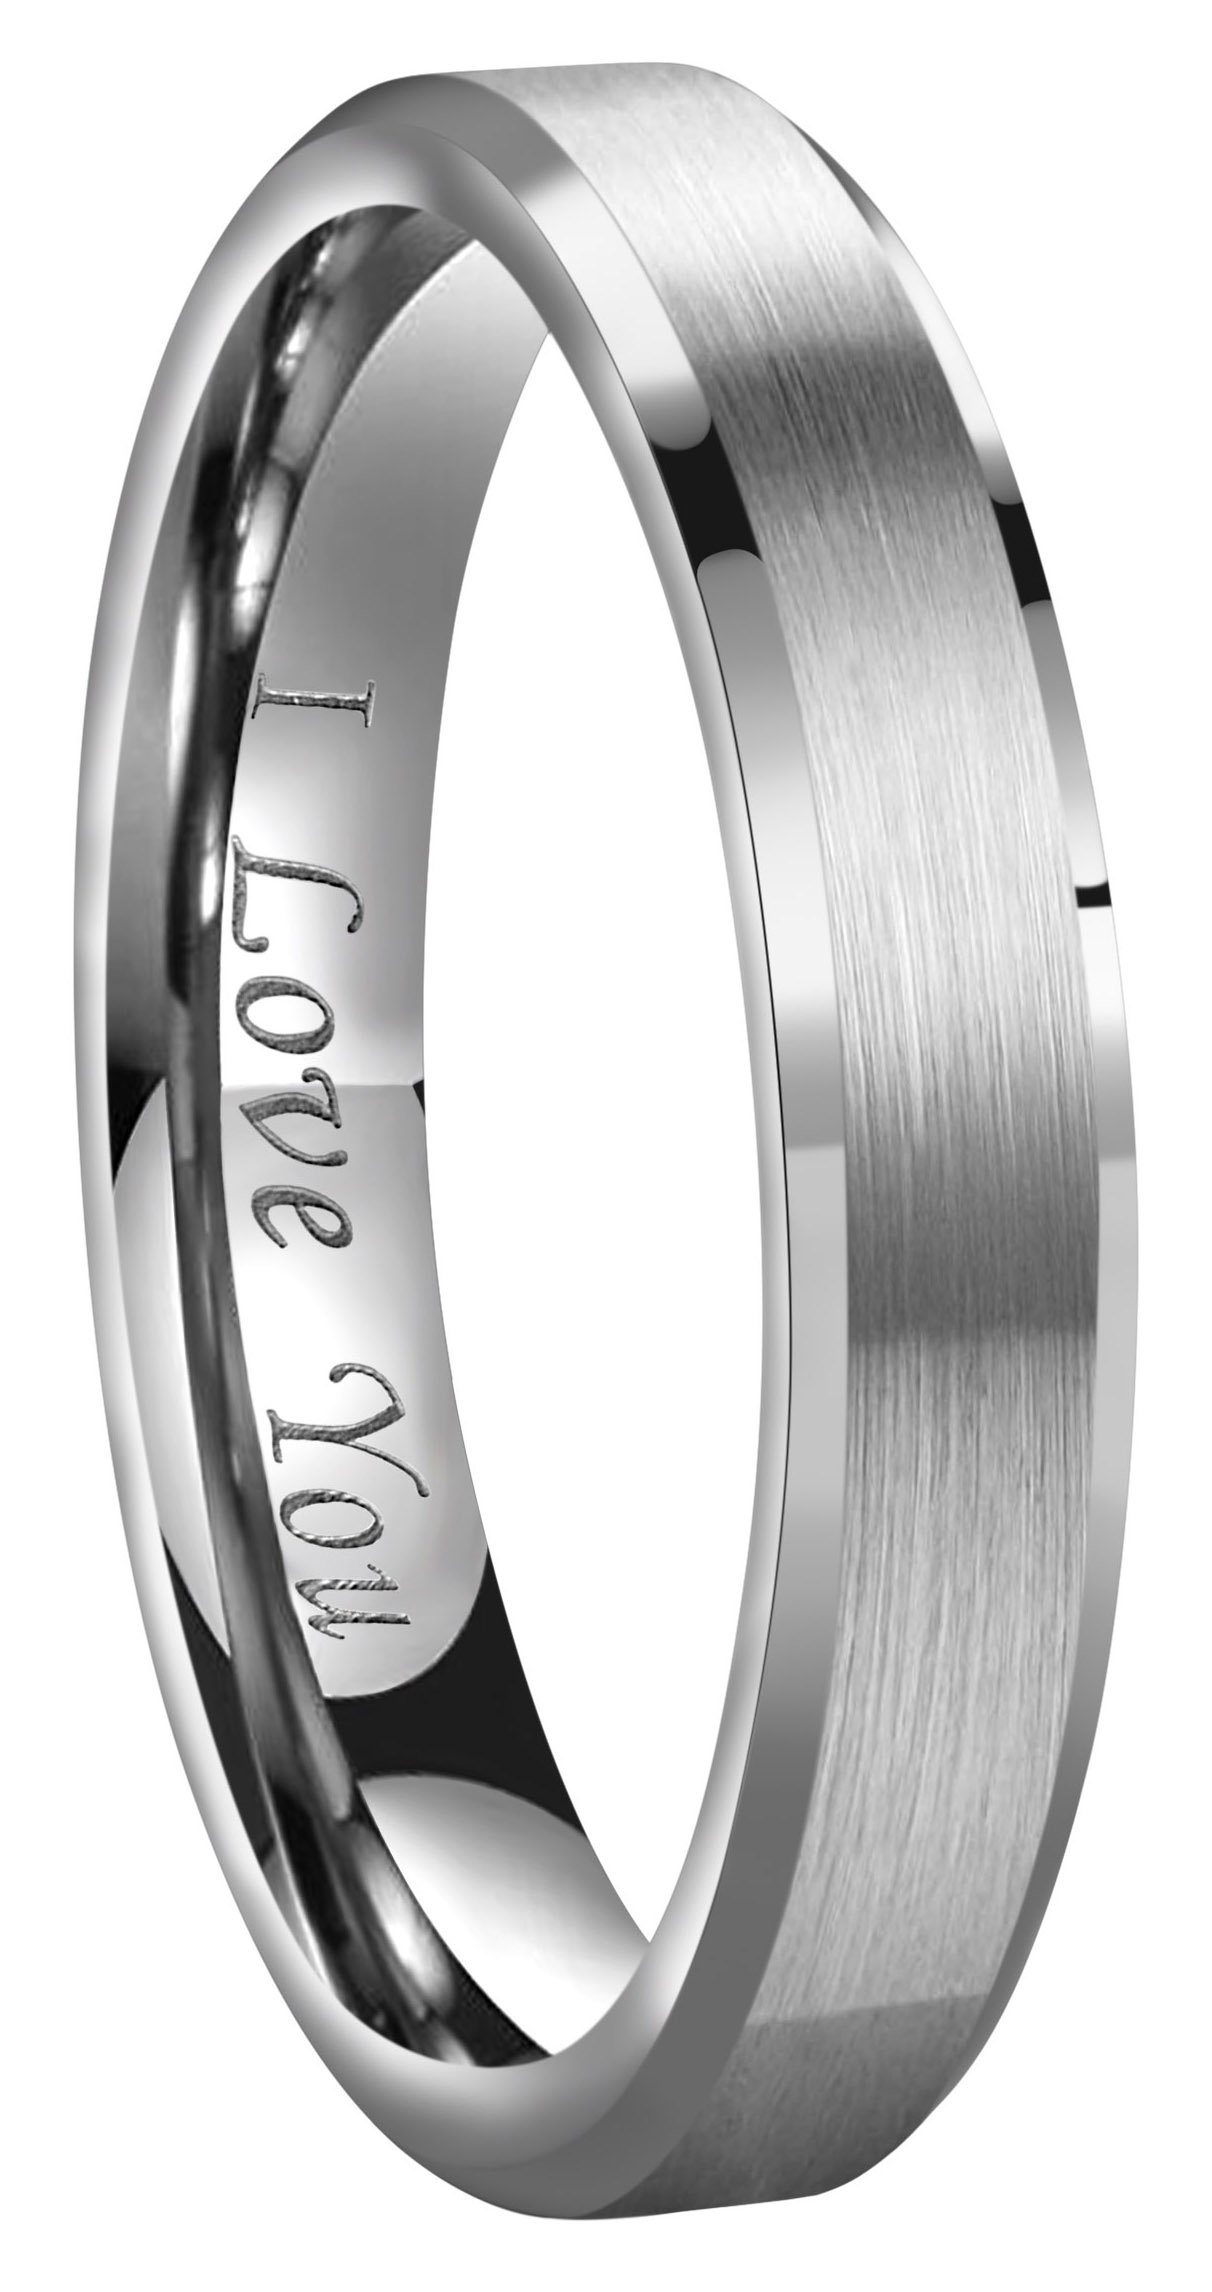 CROWNAL 4mm/6mm/8mm Tungsten Couple Wedding Bands Rings Men Women Brushed Finish Beveled Edges Engraved I Love You Size 4 To 17 (4mm,5)